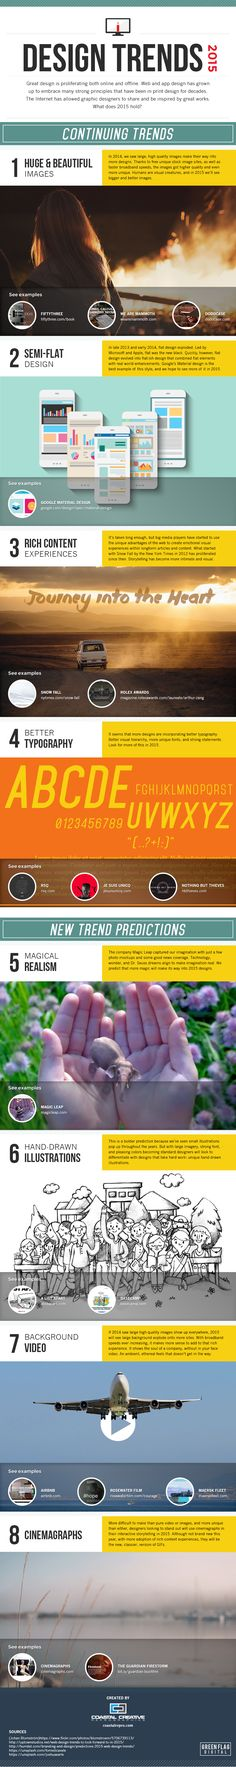 Design trends 2015 #INFOGRAPHIC #DESIGN